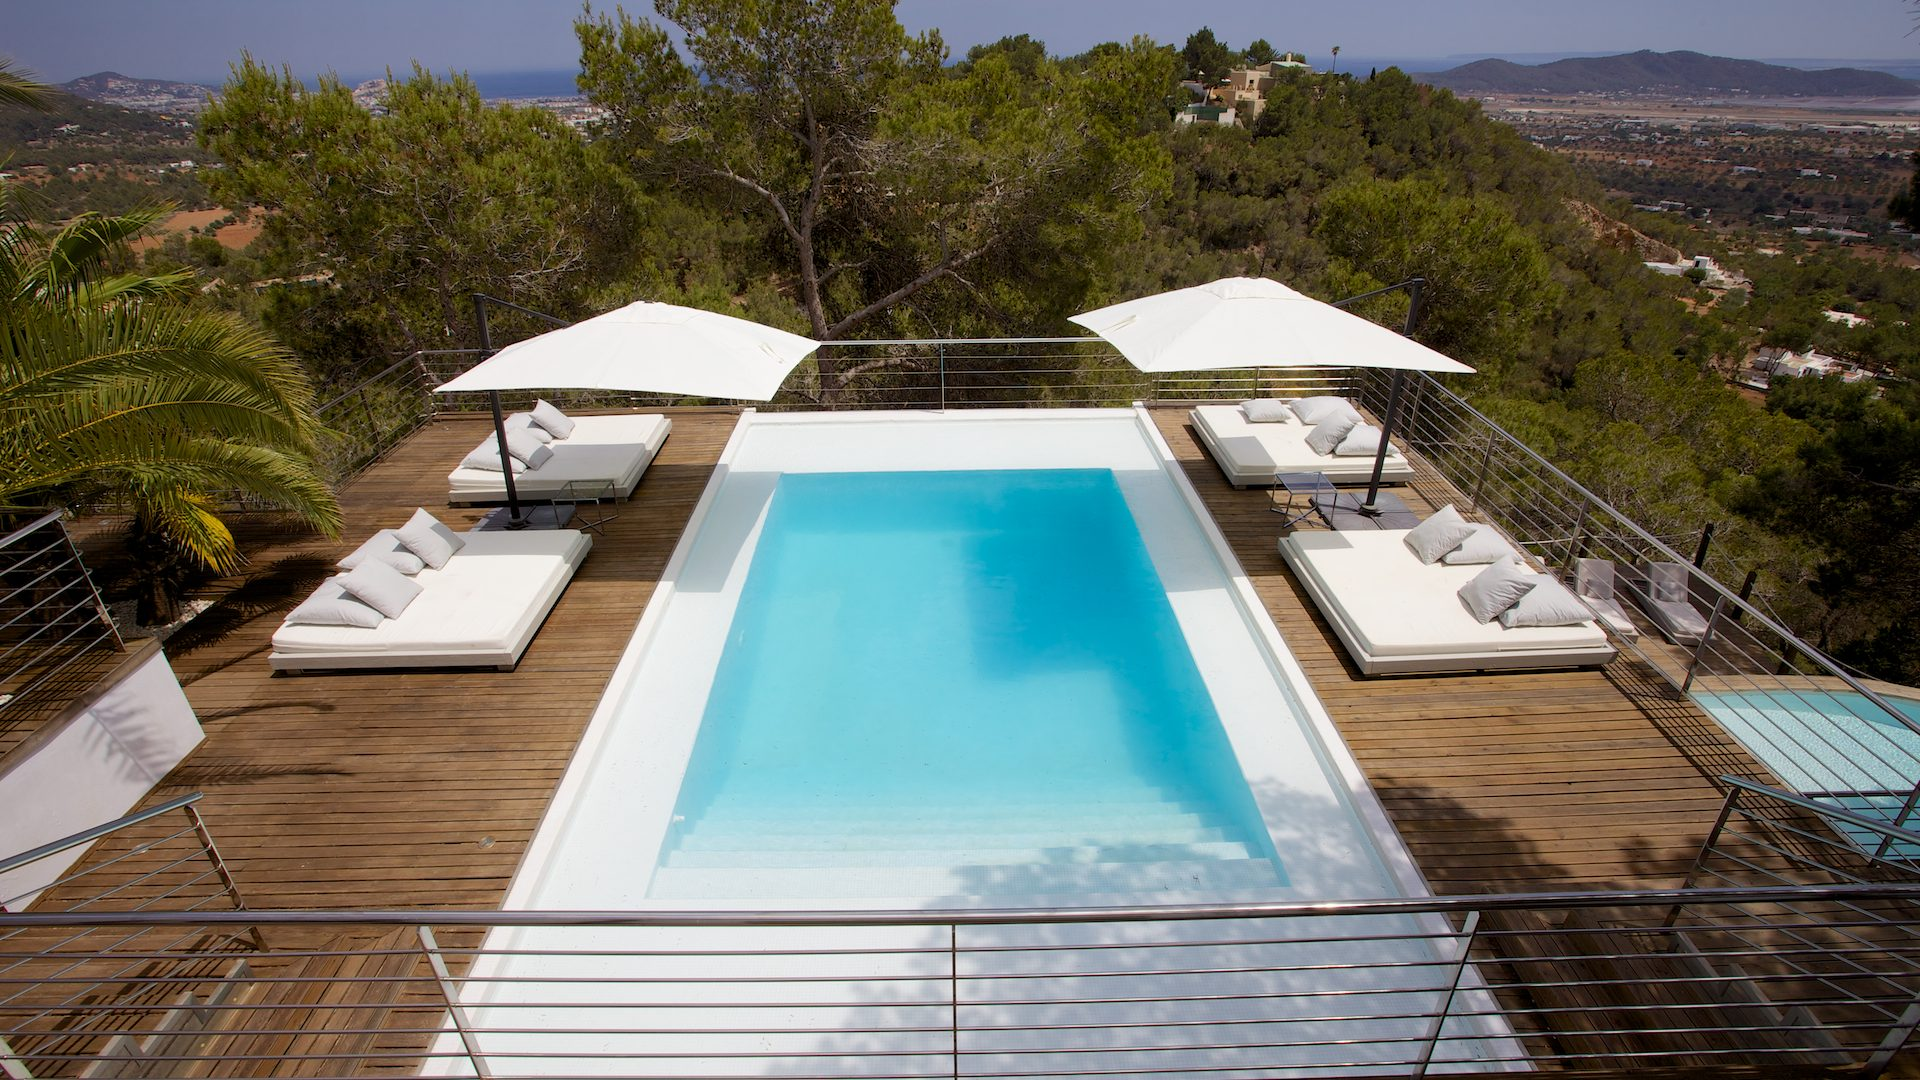 Luxury 9 bedroom villa for rent close to Ibiza